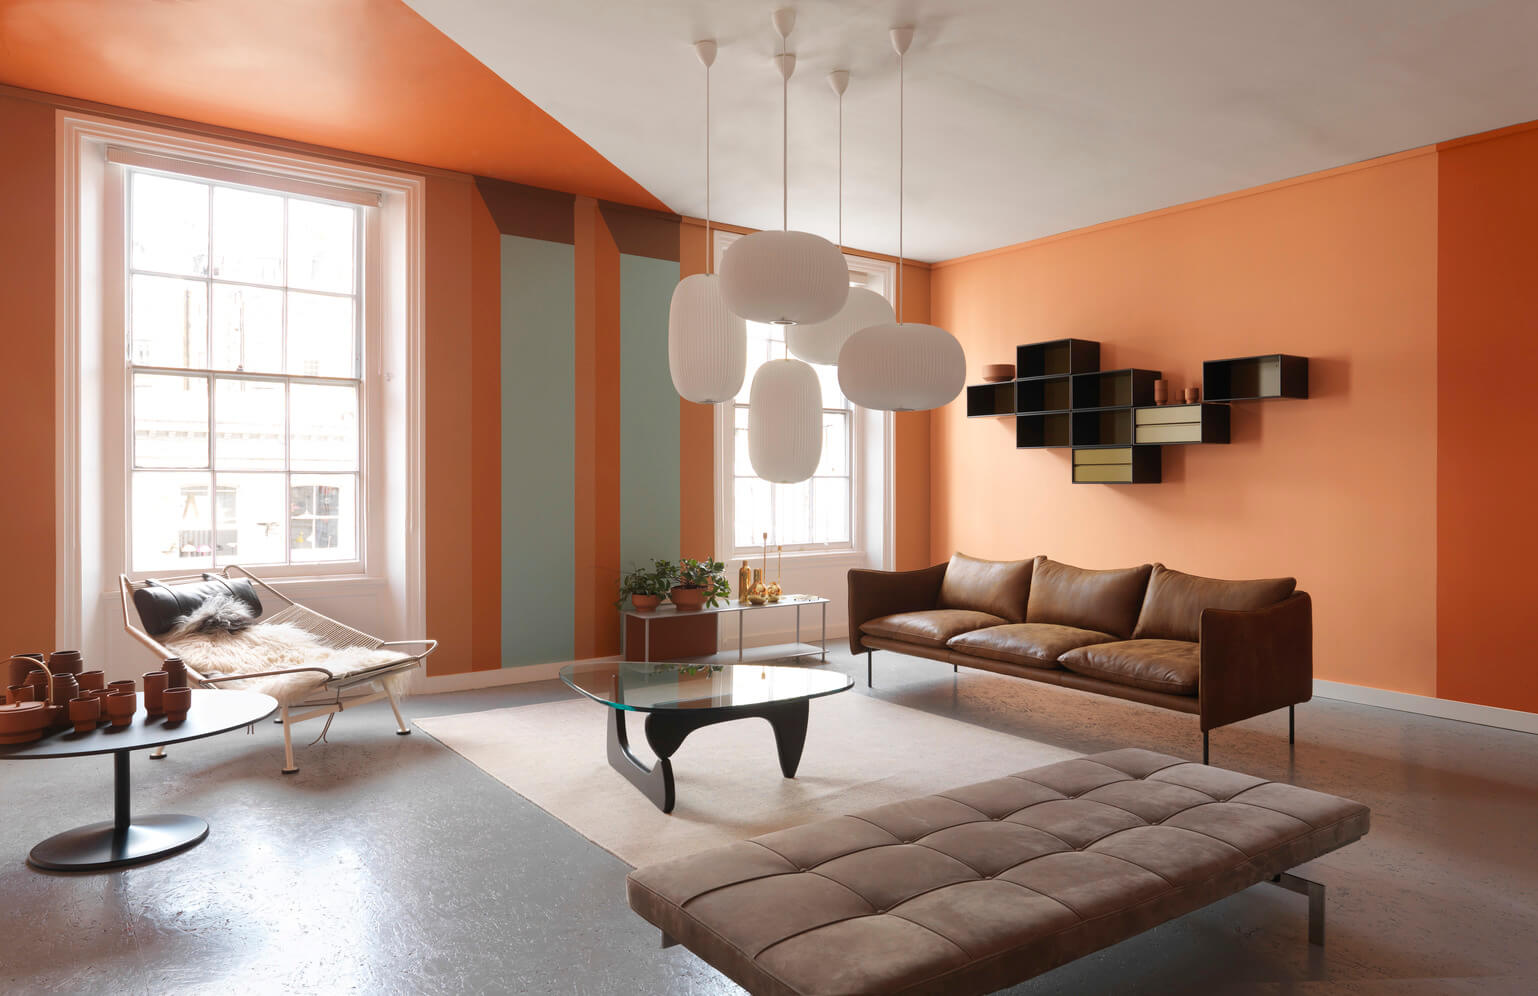 But to demonstrate that it can be a vibrant beautiful and liveable solution to interior design and seek inspiration when decorating their homes with